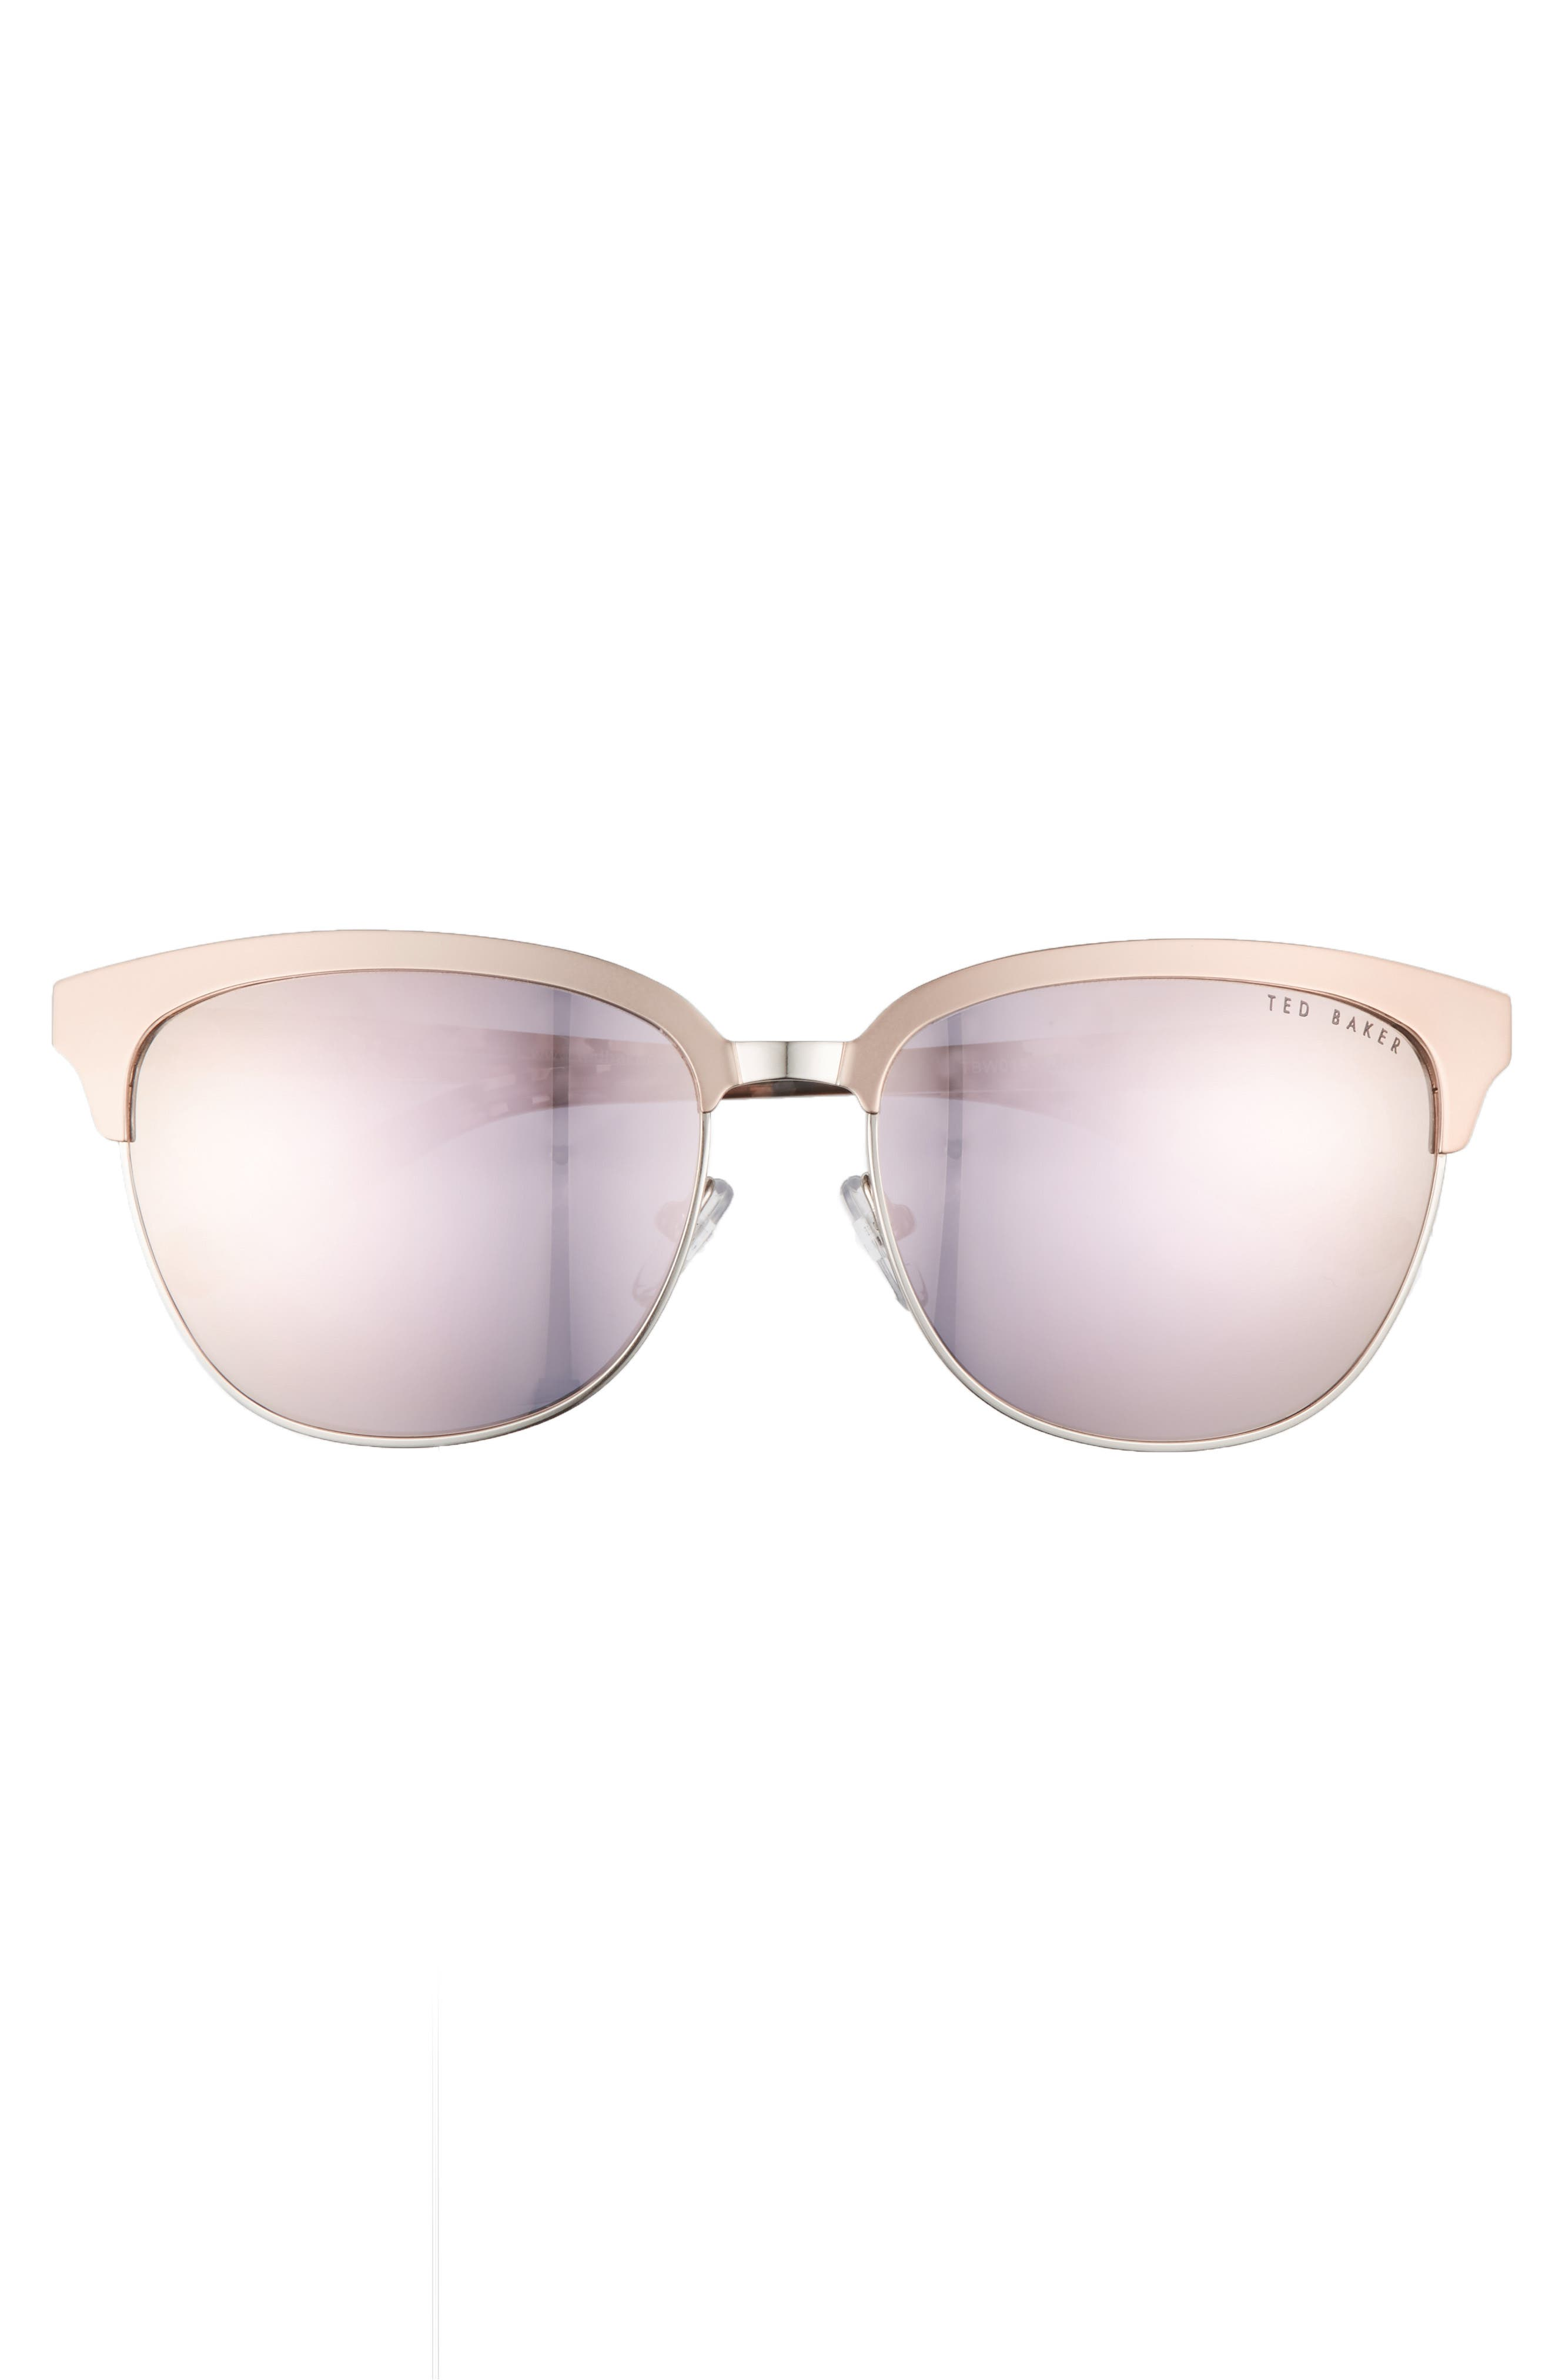 57mm Mirrored Sunglasses,                             Alternate thumbnail 3, color,                             ROSE GOLD